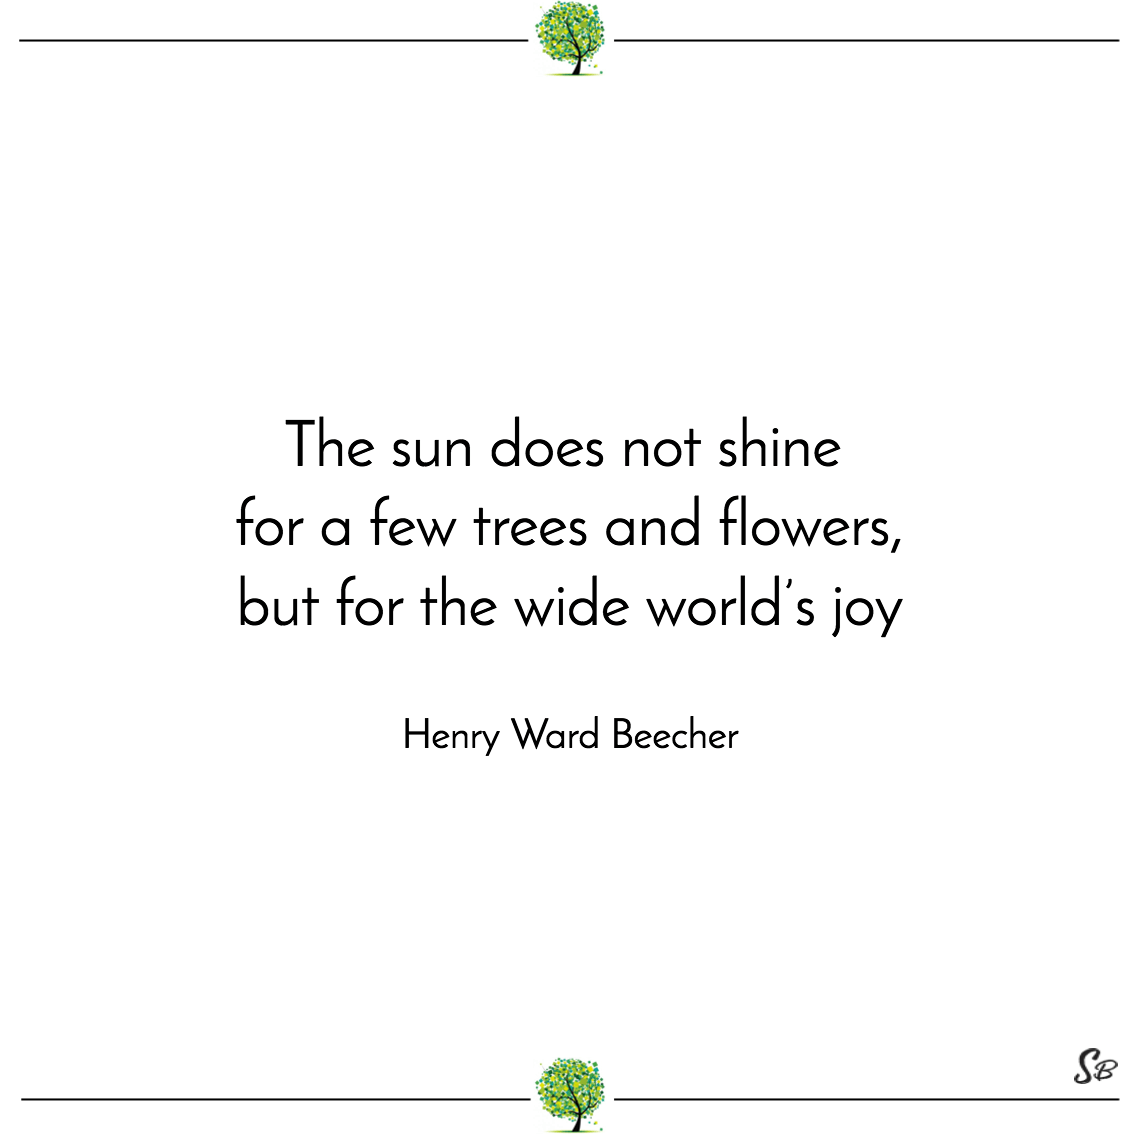 The sun does not shine for a few trees and flowers, but for the wide world's joy henry ward beecher